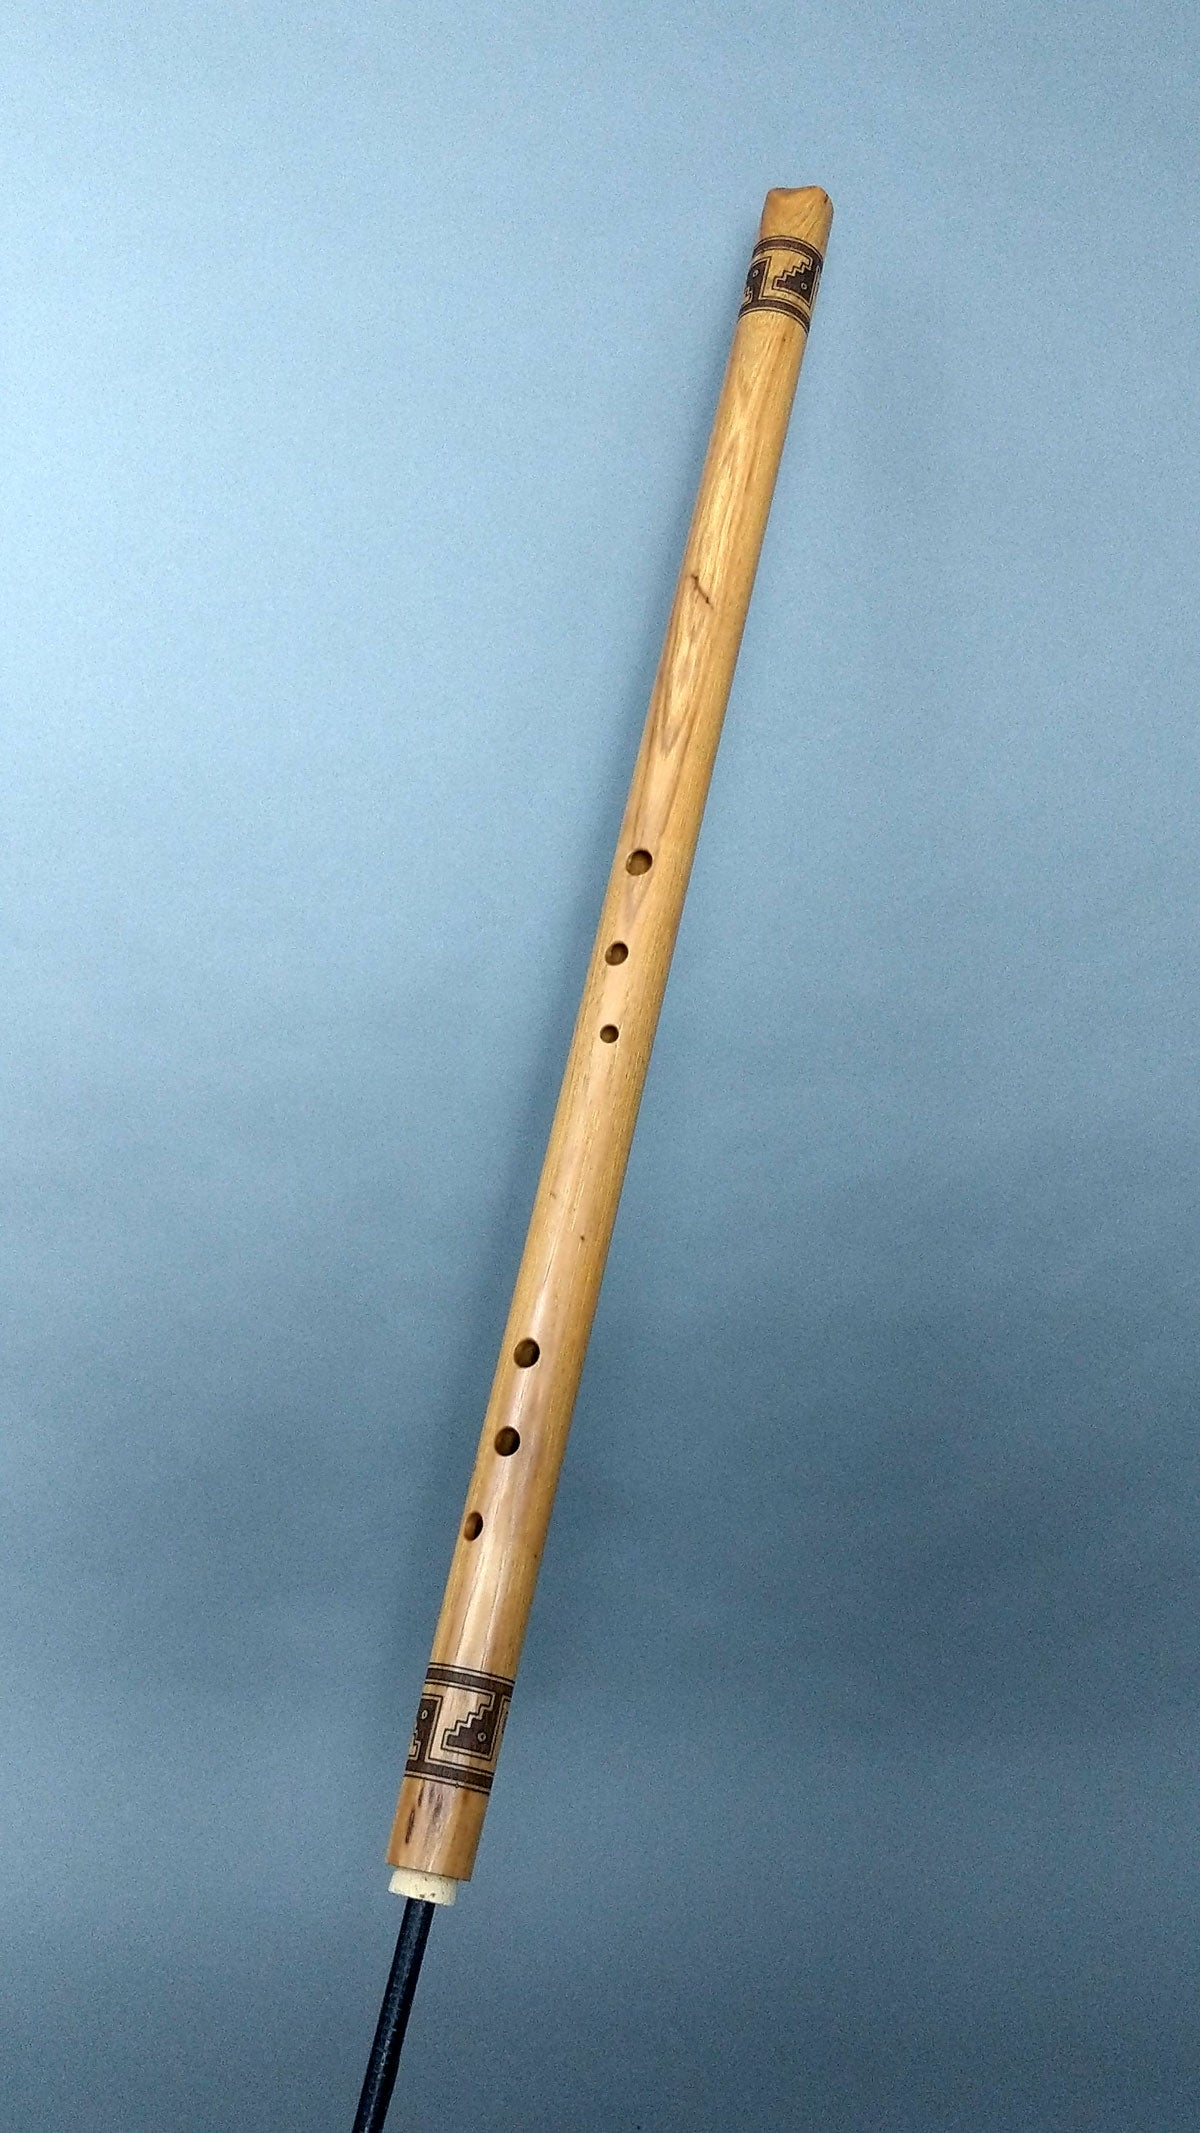 Bass A3 Hickory Basketmaker Rim Blown Flute (RB206)